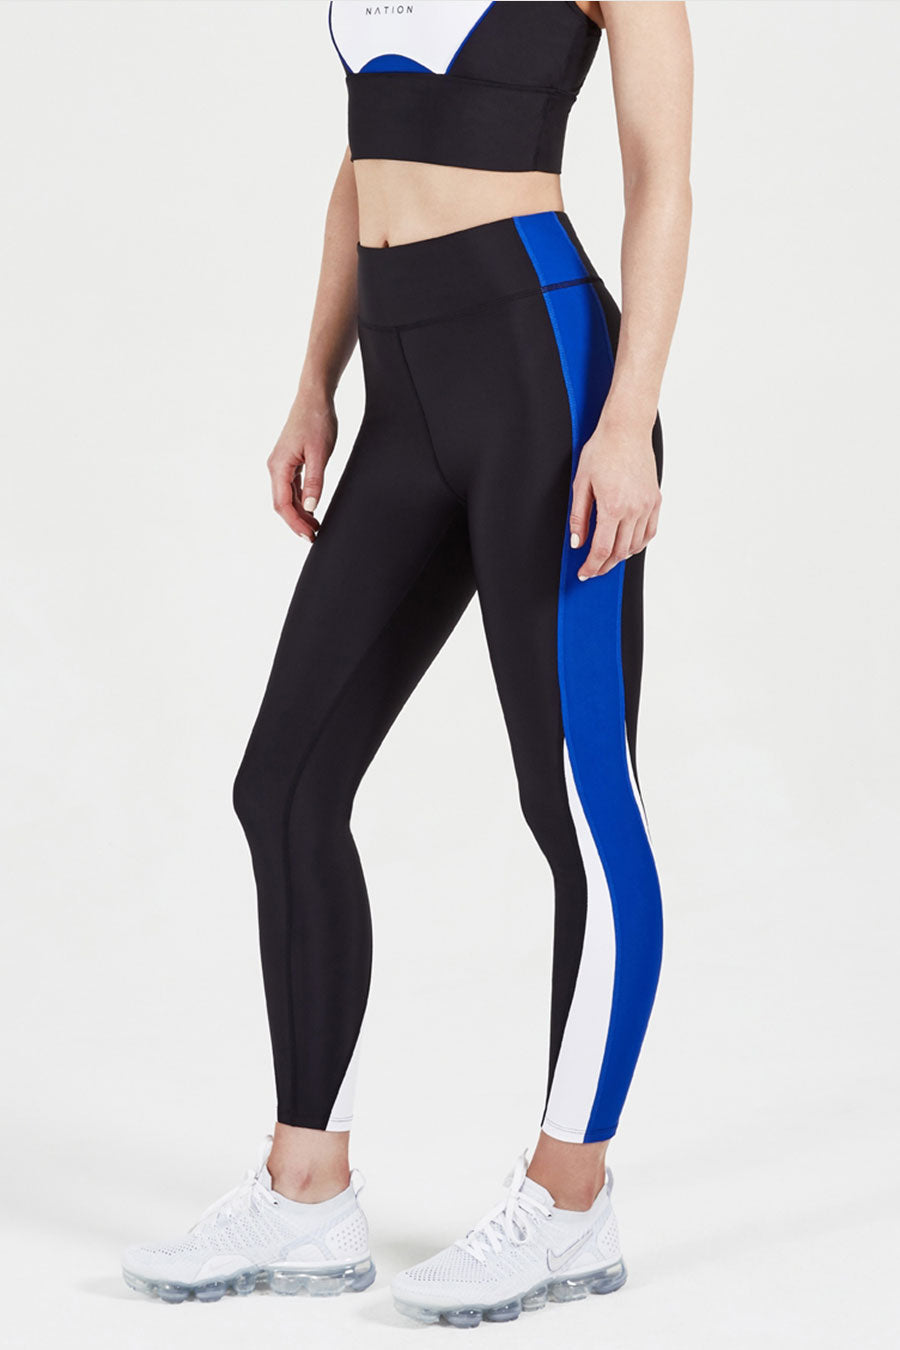 Jack Flash Legging